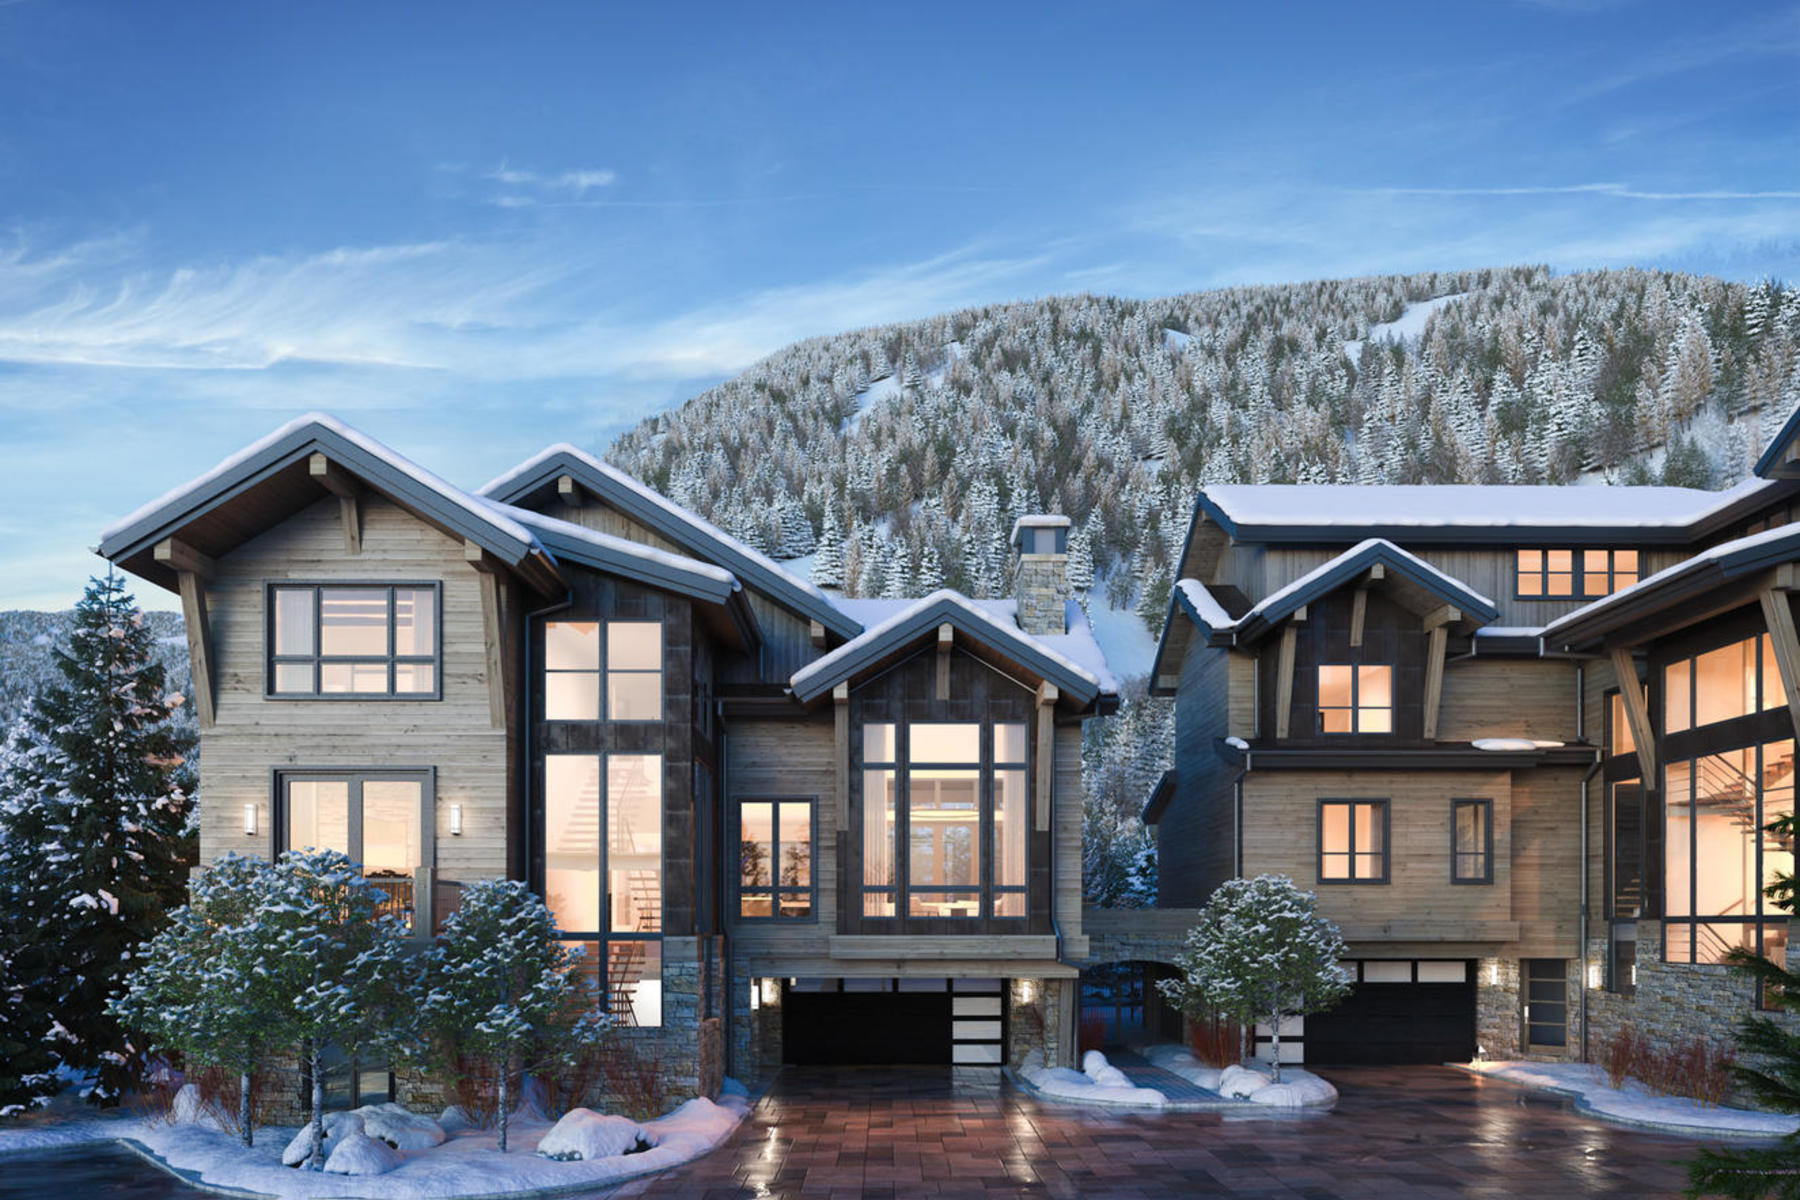 Duplex Homes for Sale at Peregrine Villas 187 Elk Track Road Beaver Creek, Colorado 81620 United States